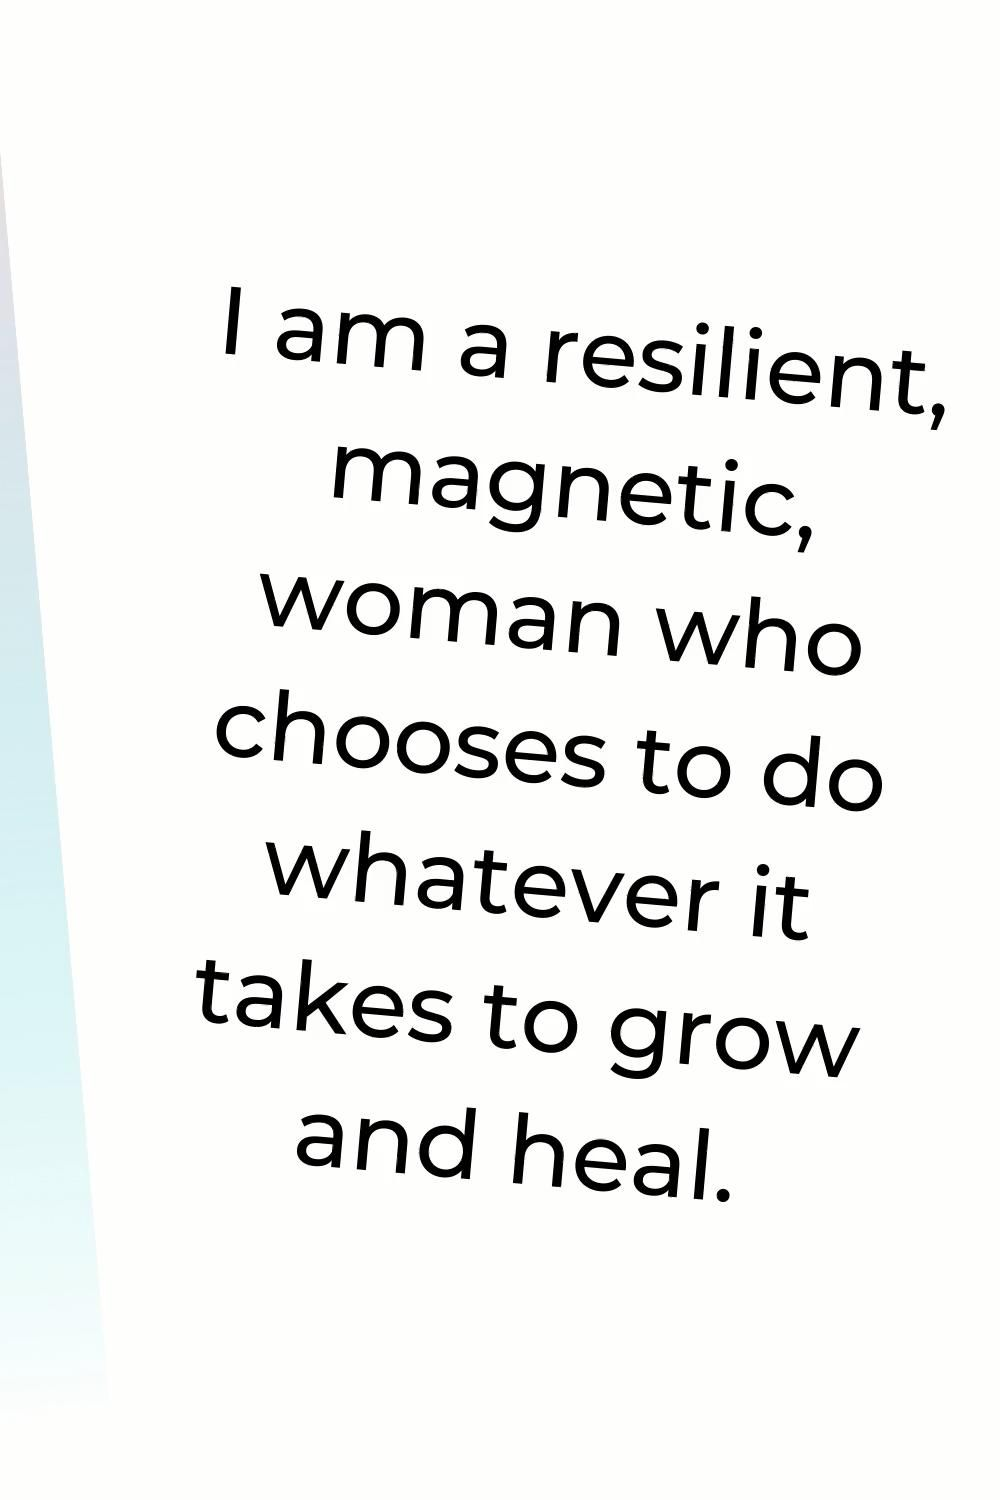 Magnetic Woman